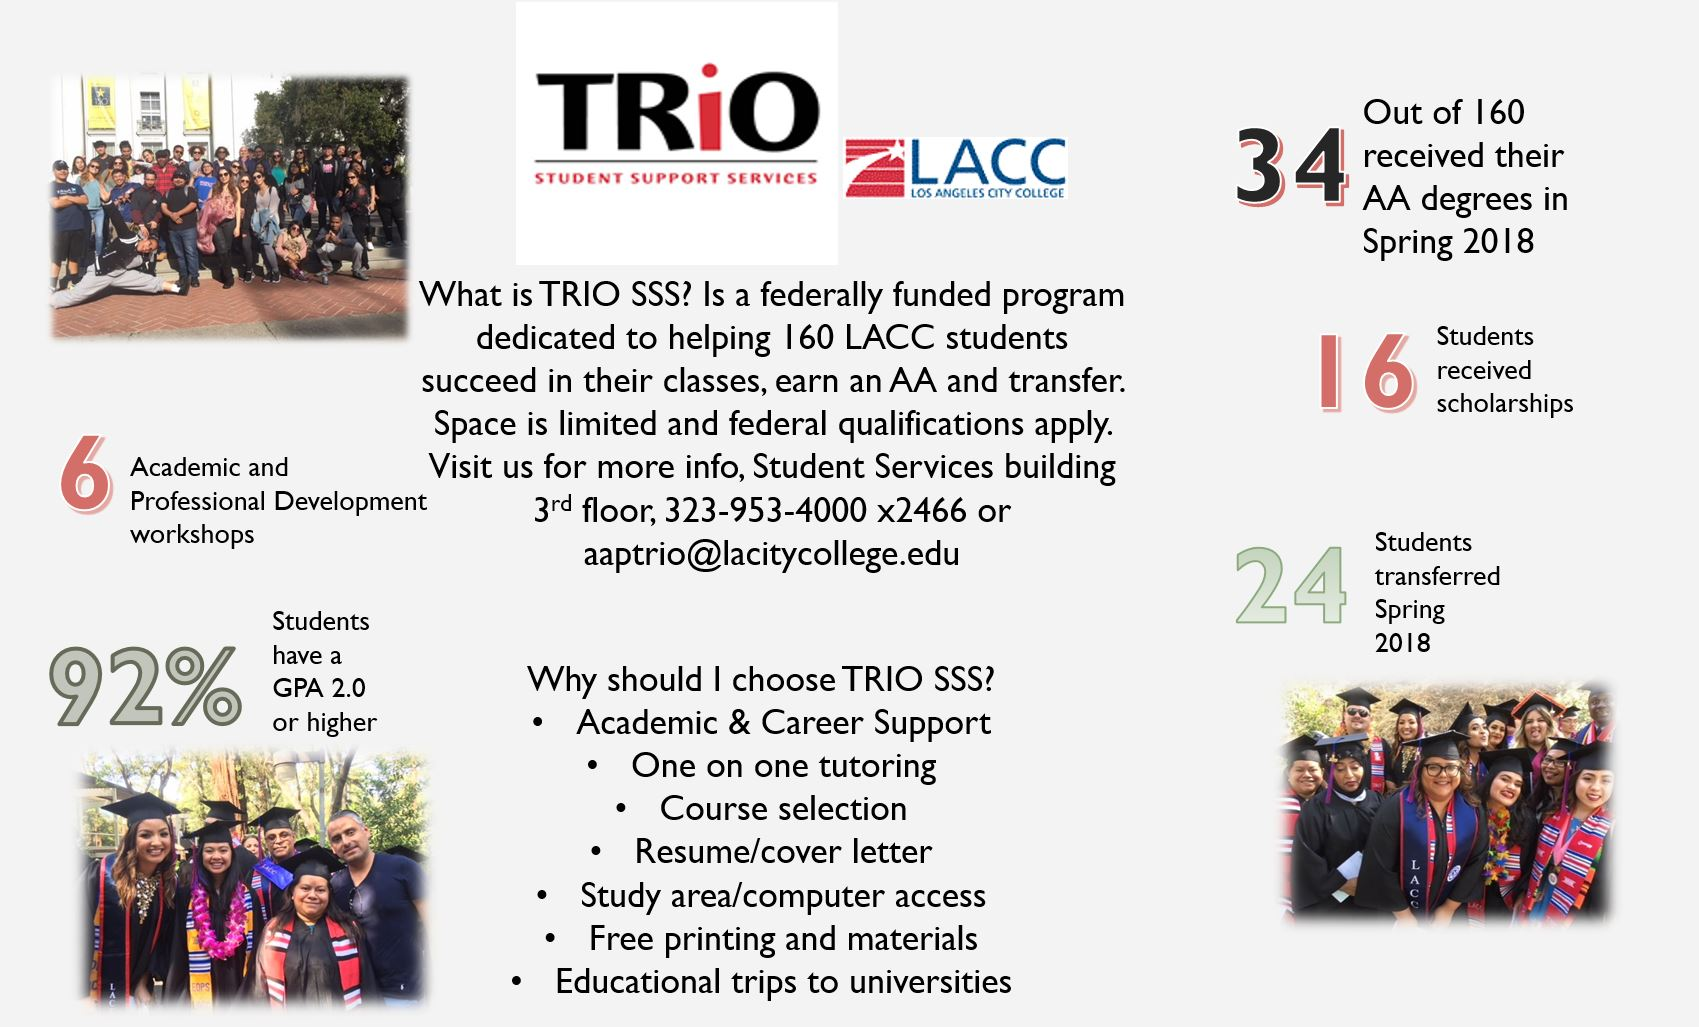 TRIO Facts about transferring, events, graduation